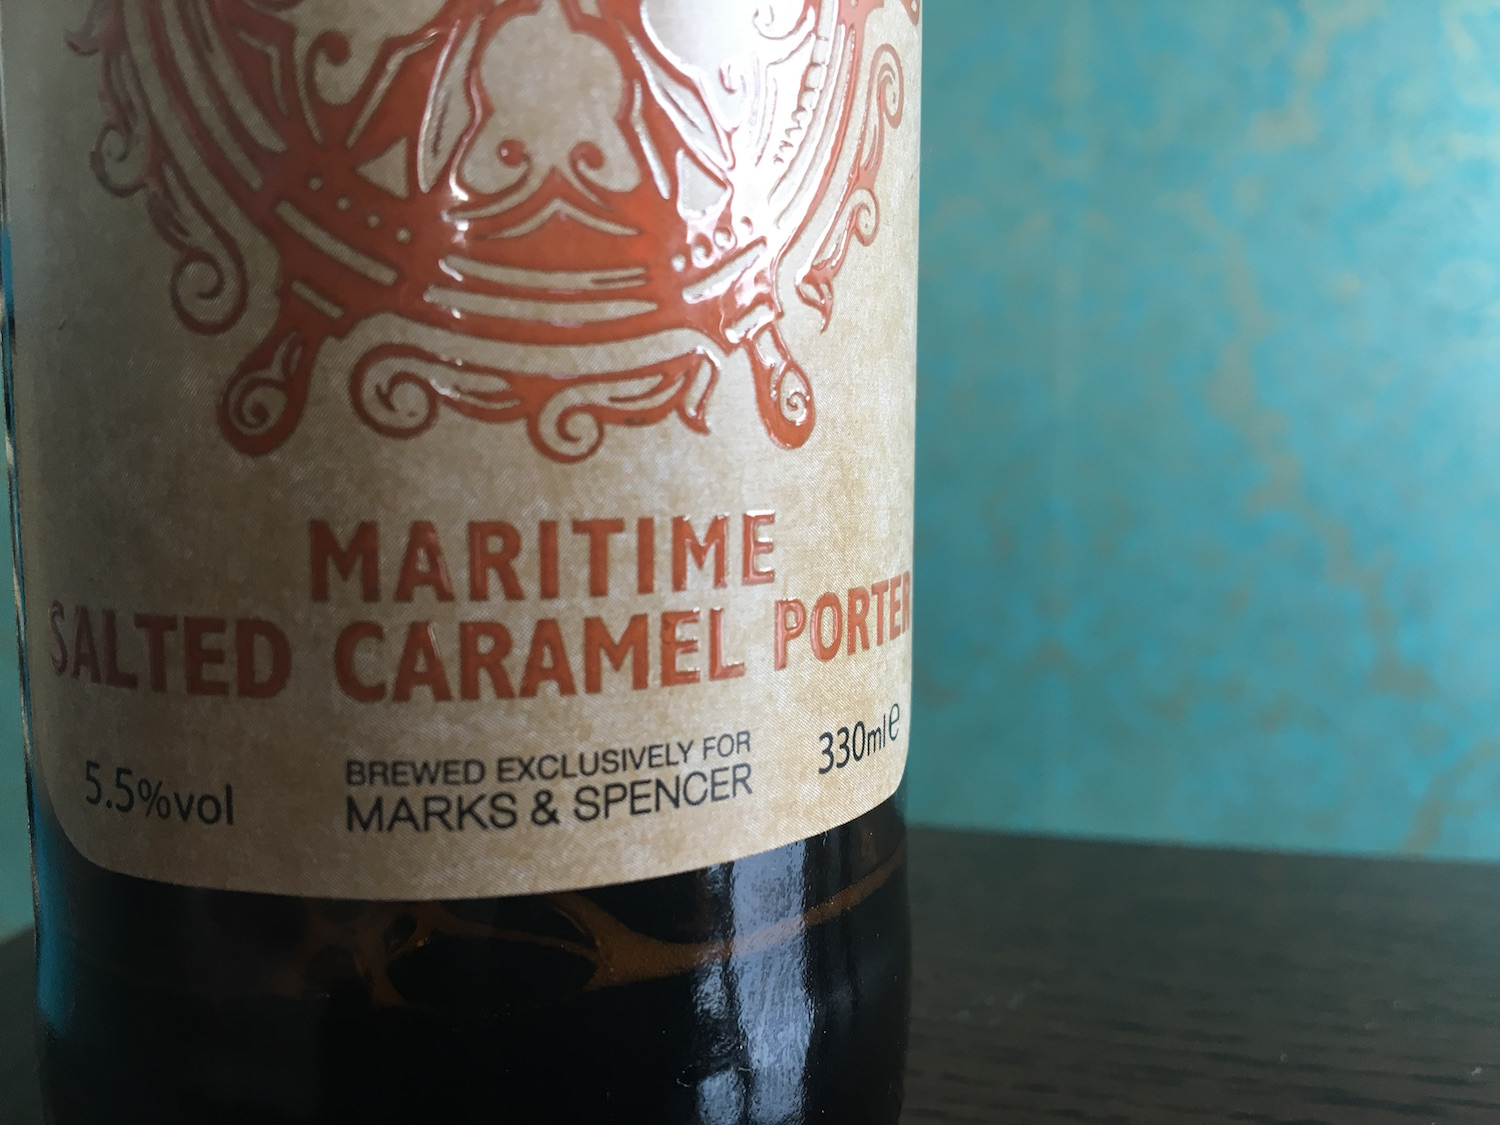 Beer Review: Maritime Salted Caramel Porter